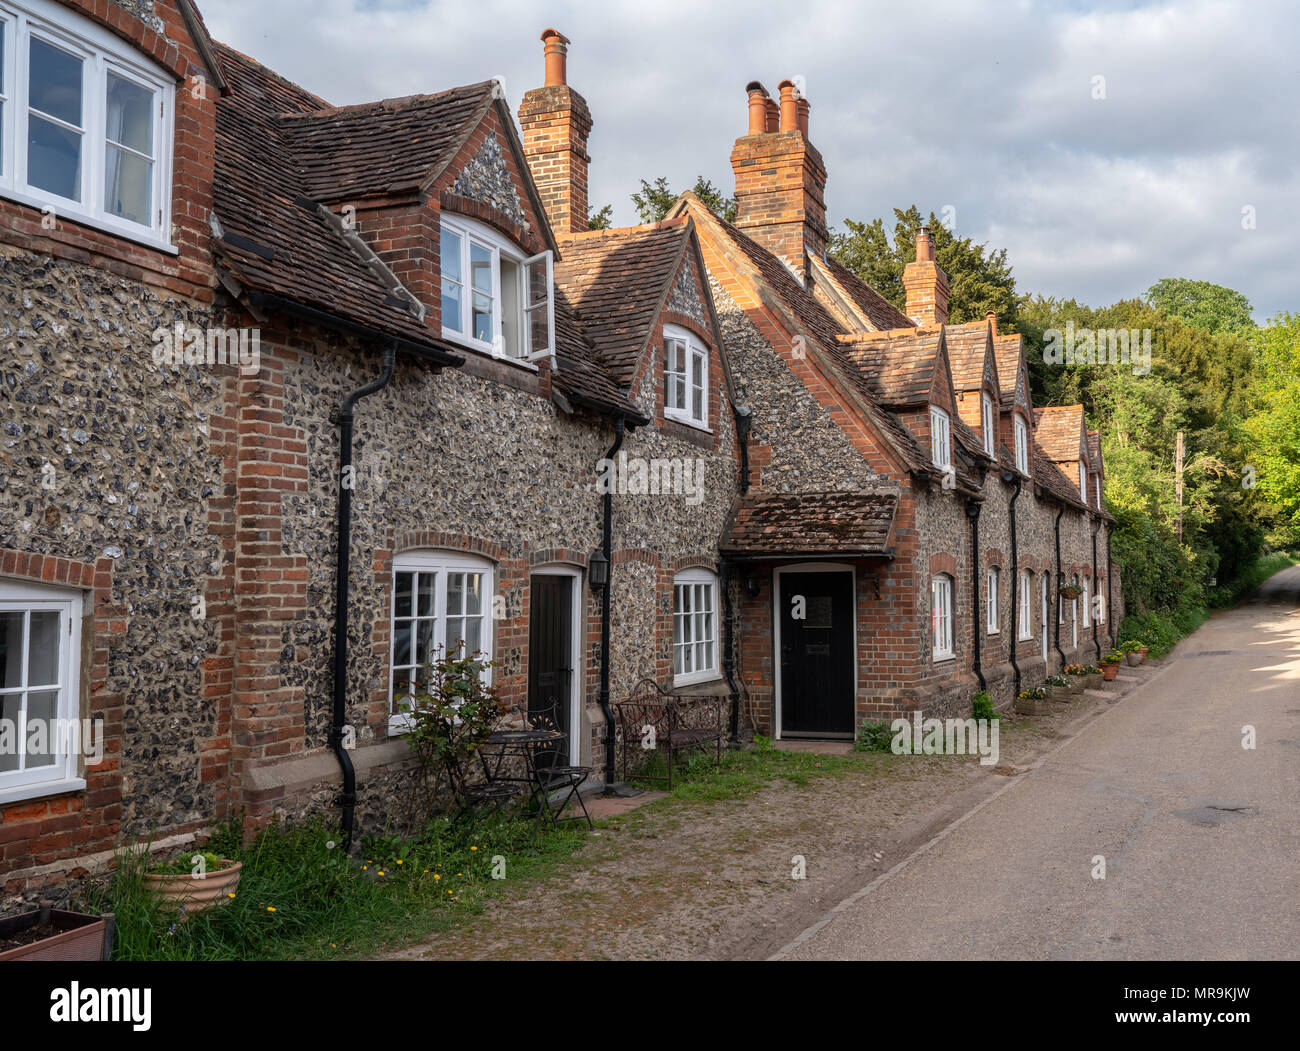 Pretty street of brick houses in village of Hambleden - Stock Image